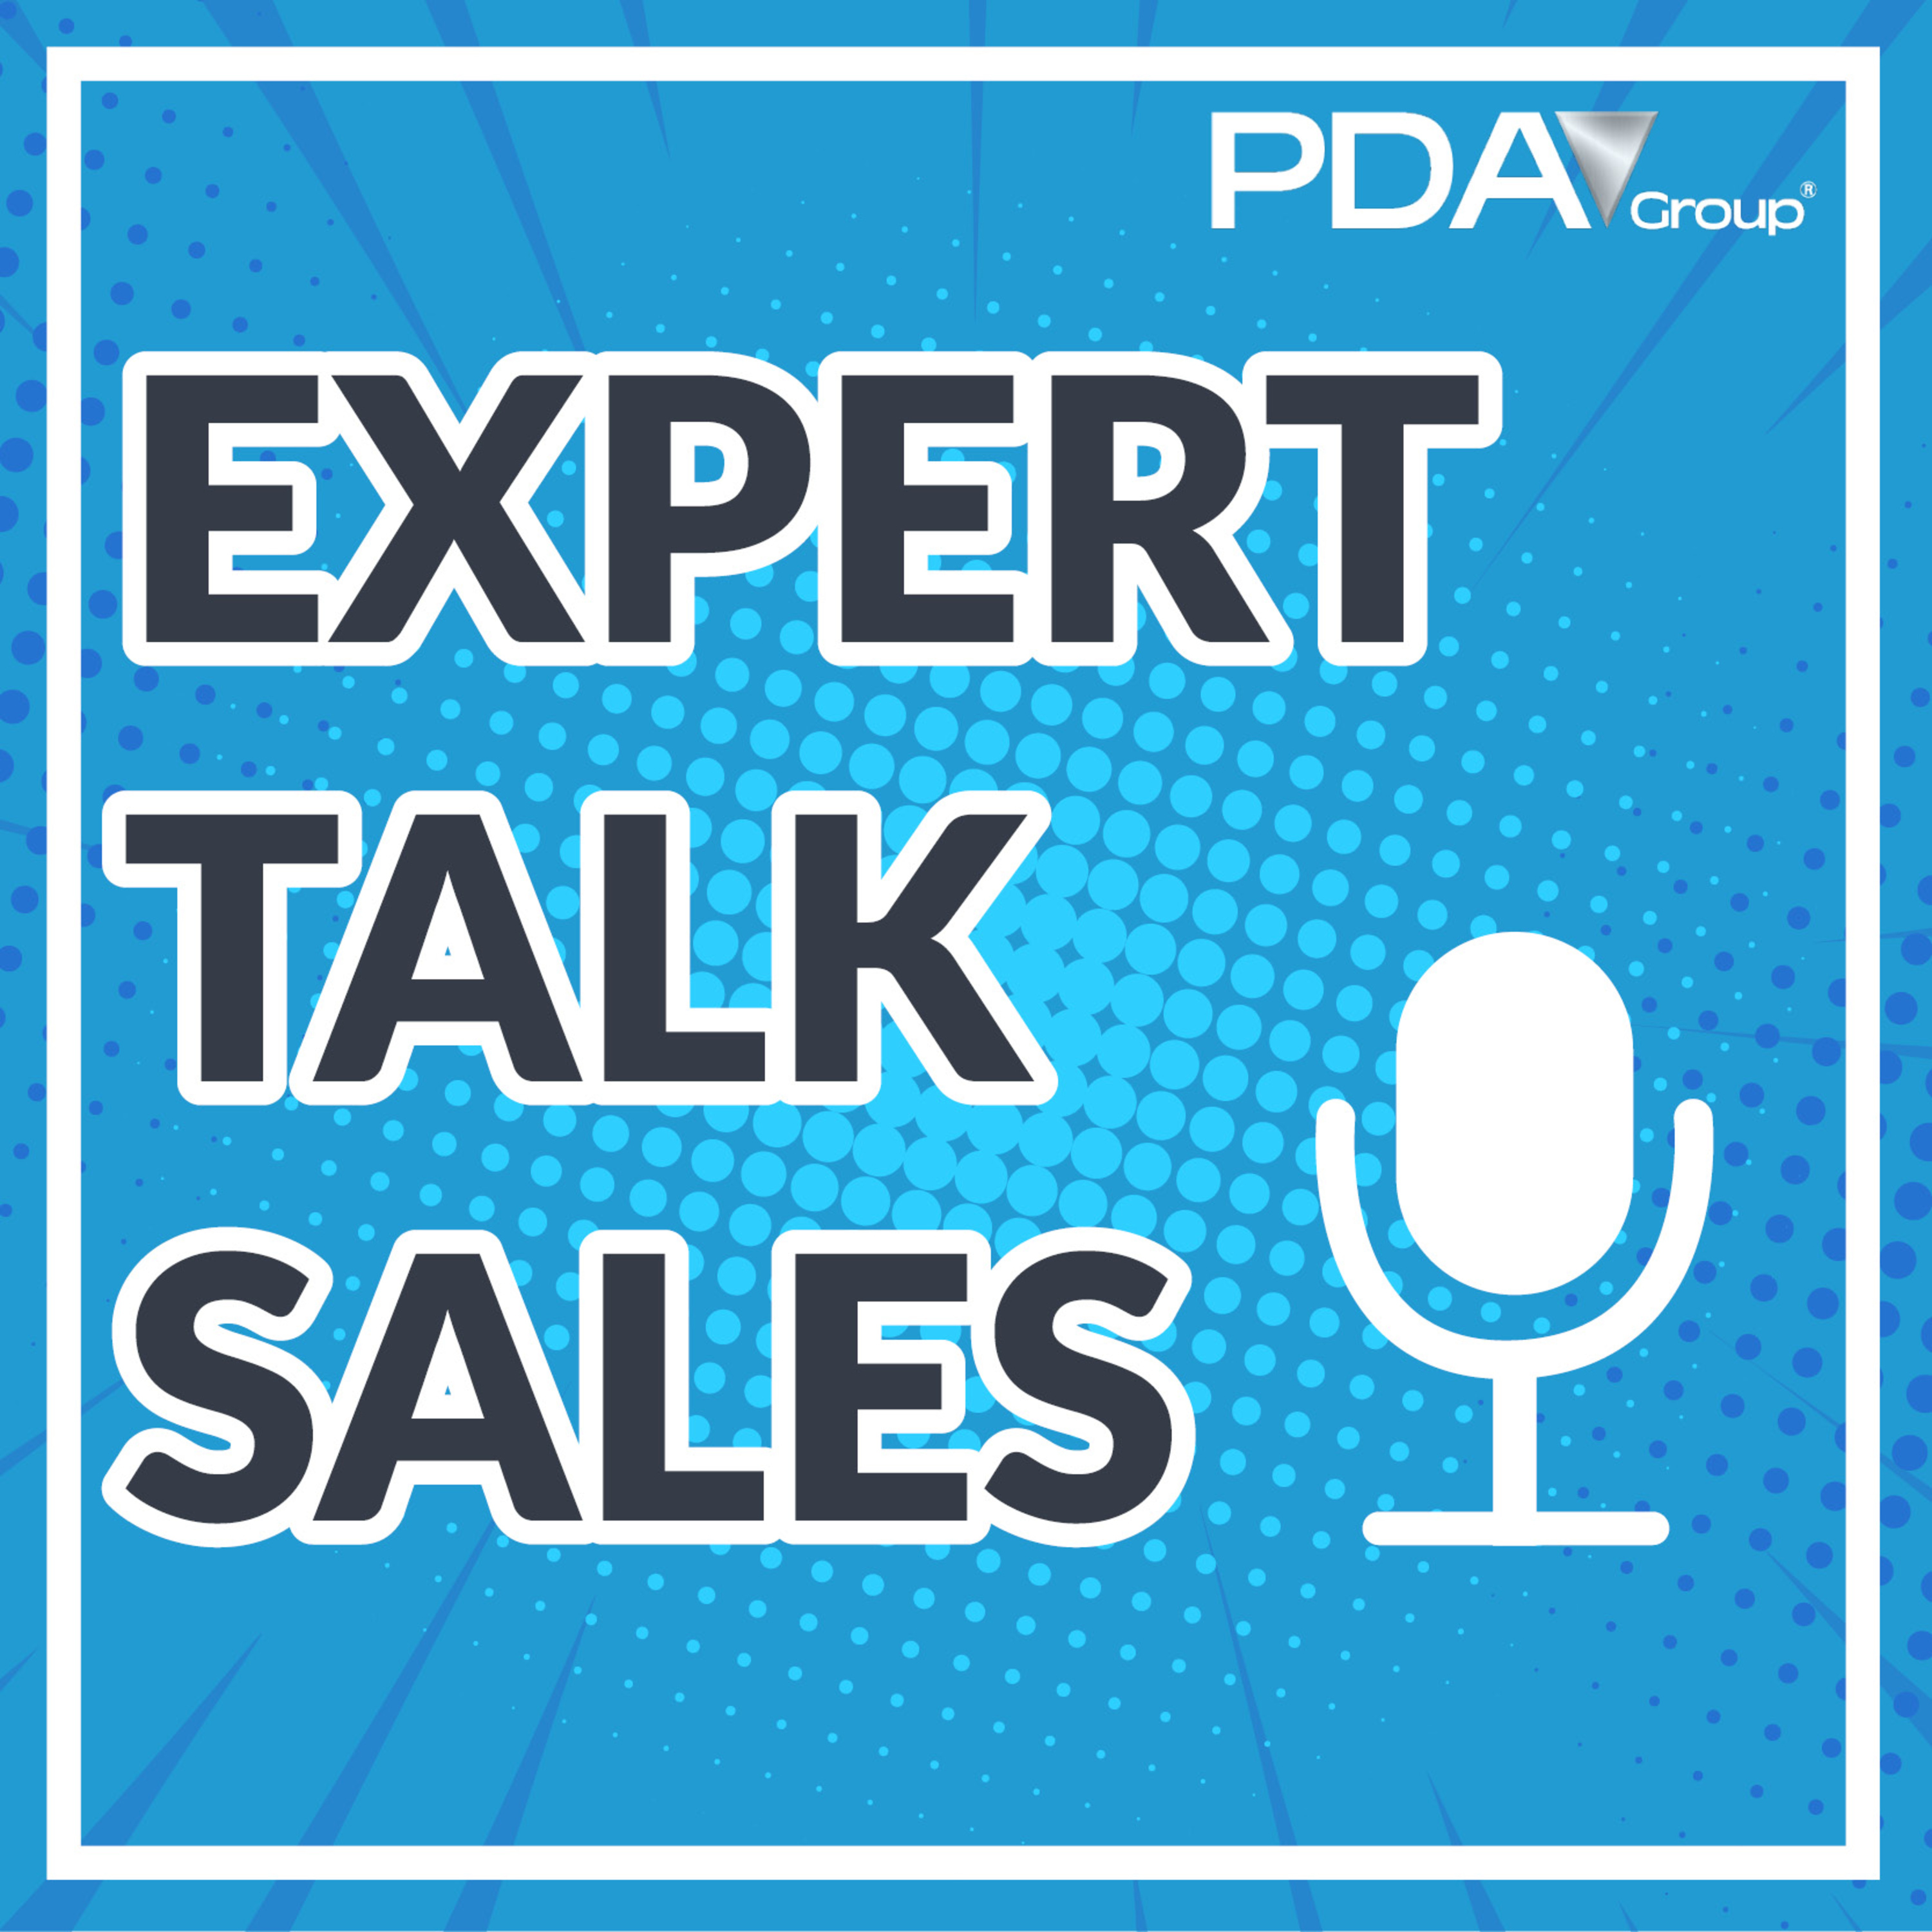 Expert Talk Sales: Imperatives for Coaching a Valuable Sales Team with Keith Rosen